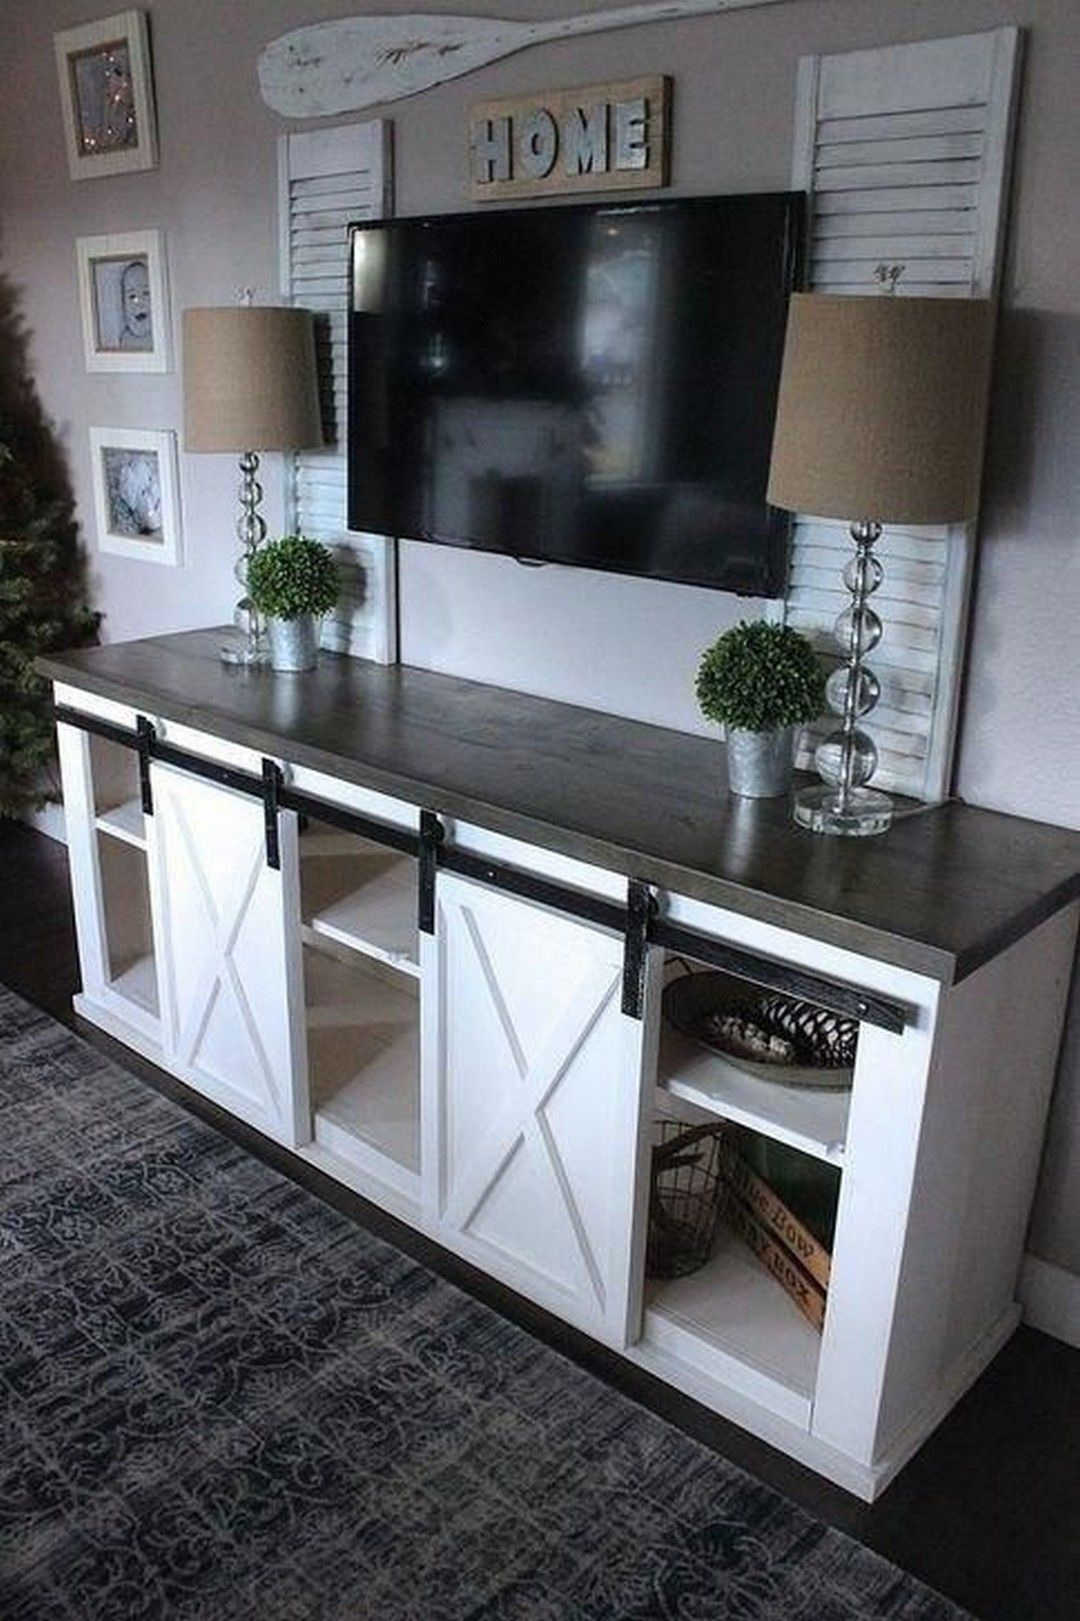 Farmhouse Style TV Console Ideas (With images) | Living ...